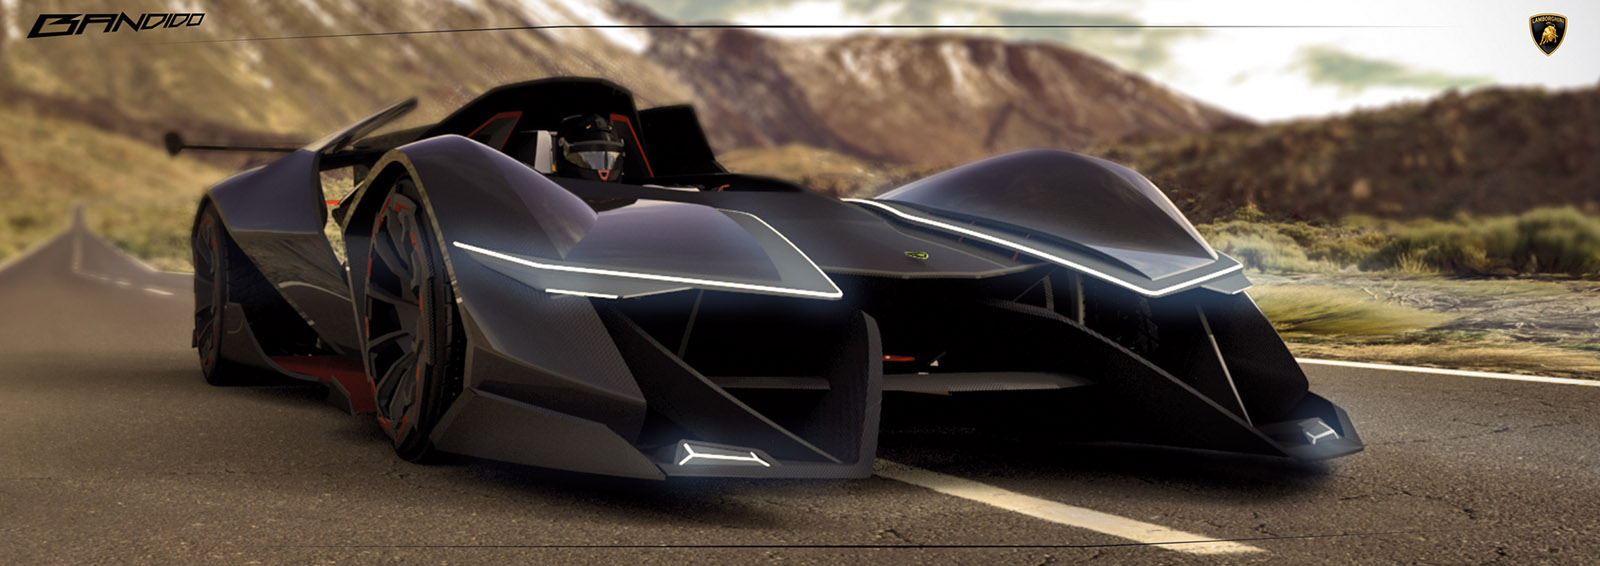 This Electric Single Seater Concept Is So Outrageous Lamborghini Could Actually Build It Carscoops